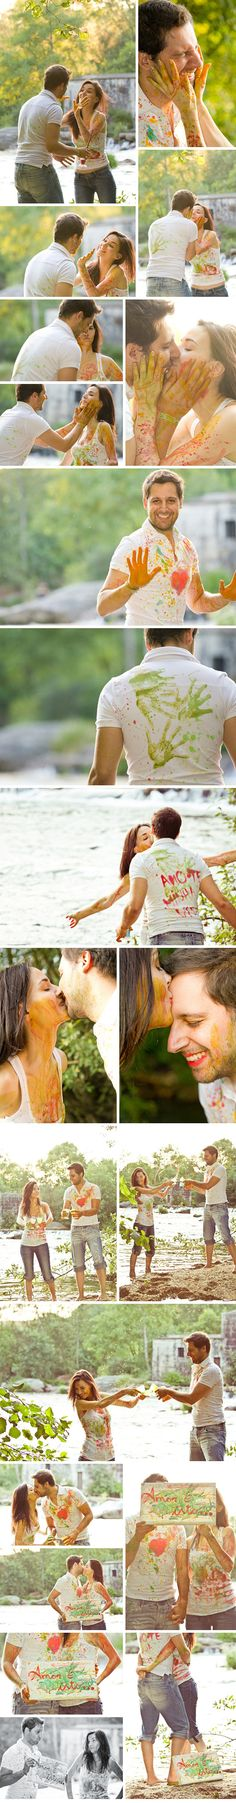 fun! engagement pics! I so want someone to do something like this!!!